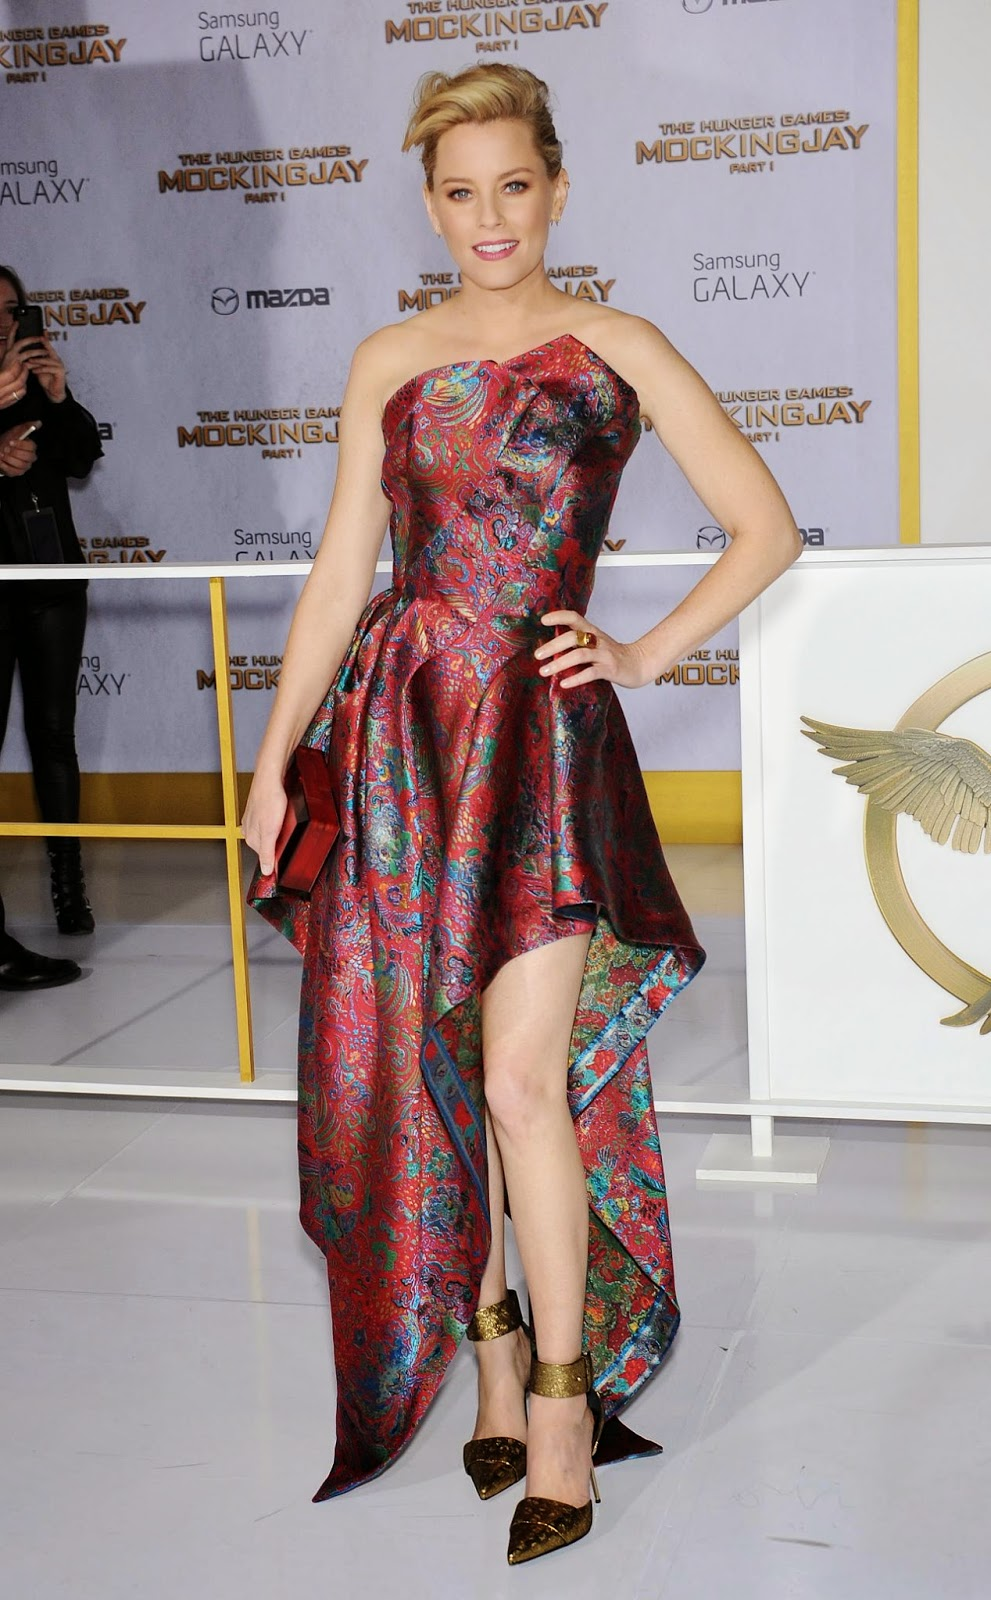 Elizabeth Banks in a strapless paisley gown at The Hunger Games: Mockingjay Part 1 LA premiere